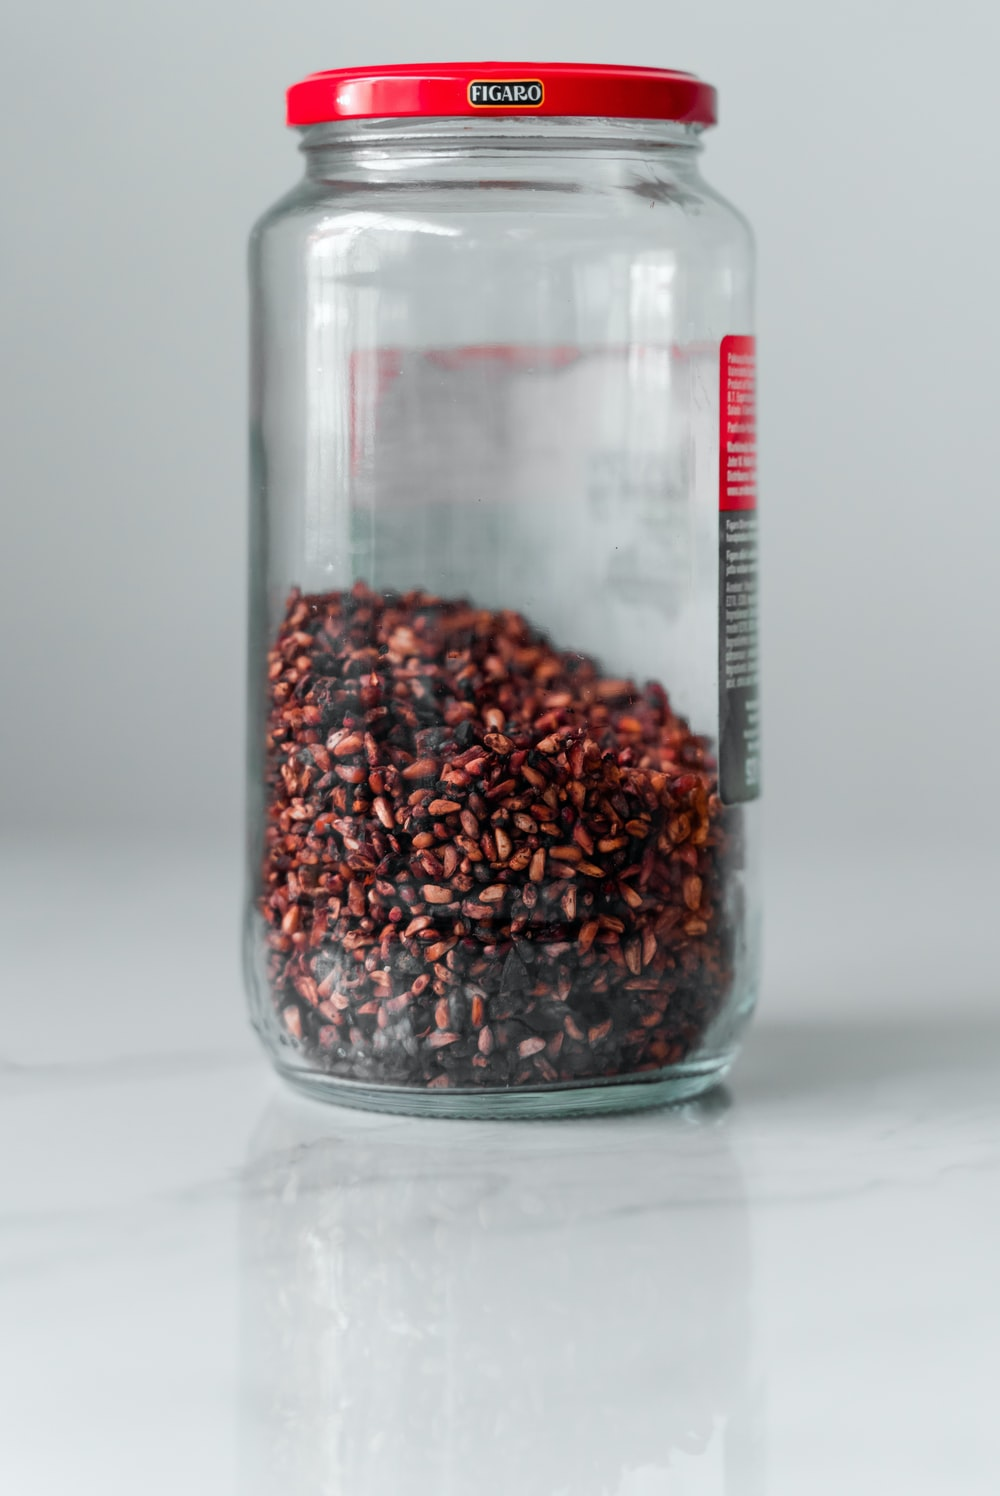 brown beans in clear glass jar